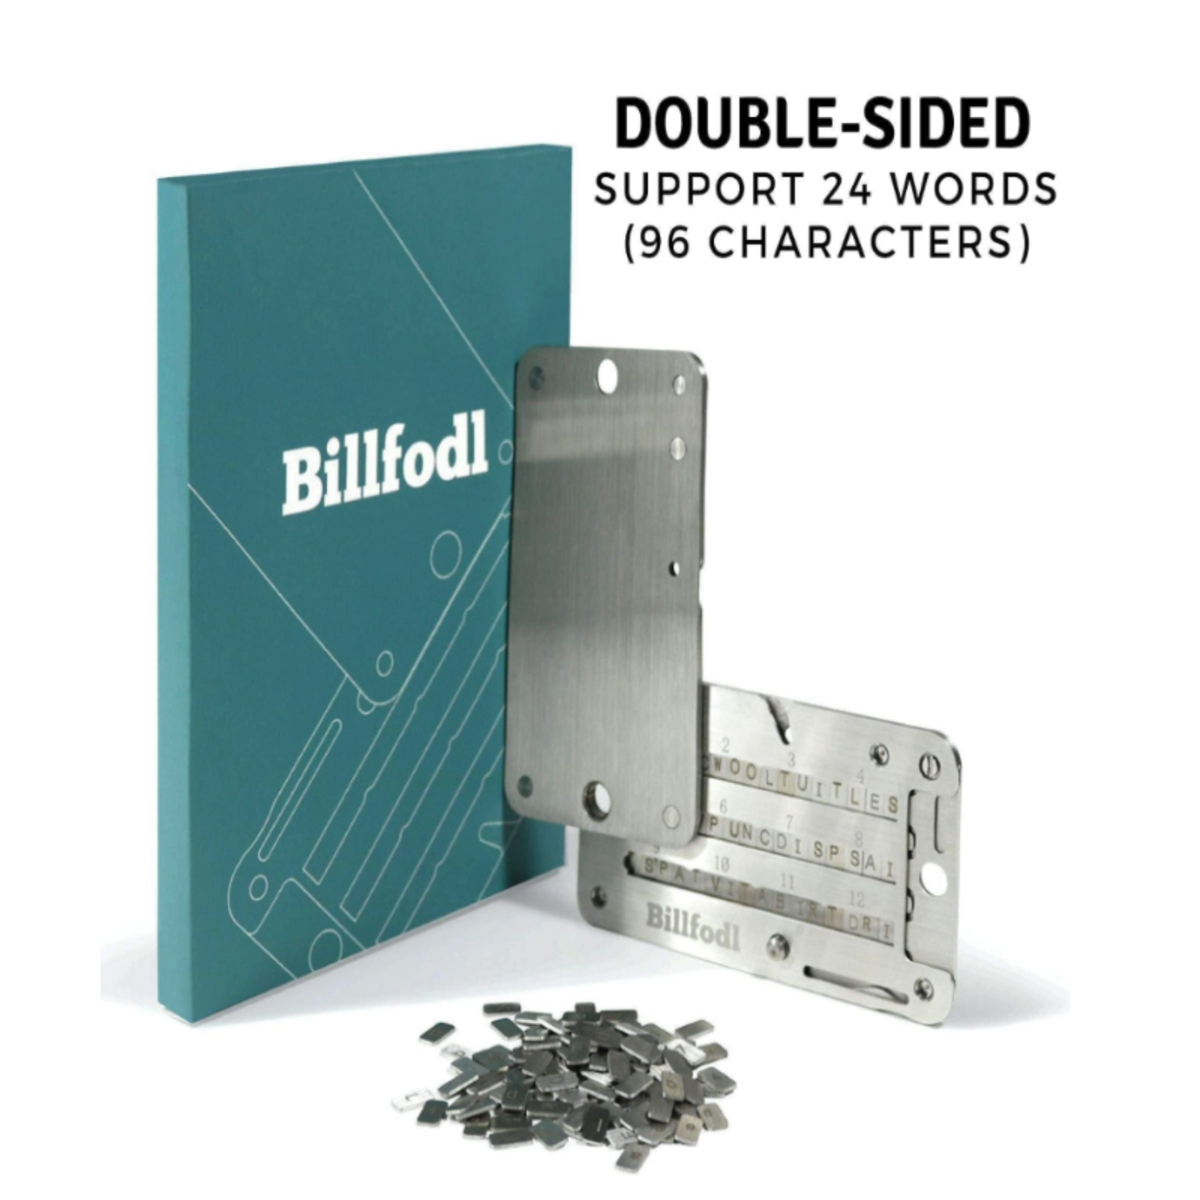 Billfodl products can keep crypto private key or recovery seeds safer than writing them on paper, which is easily damaged by fire or water.